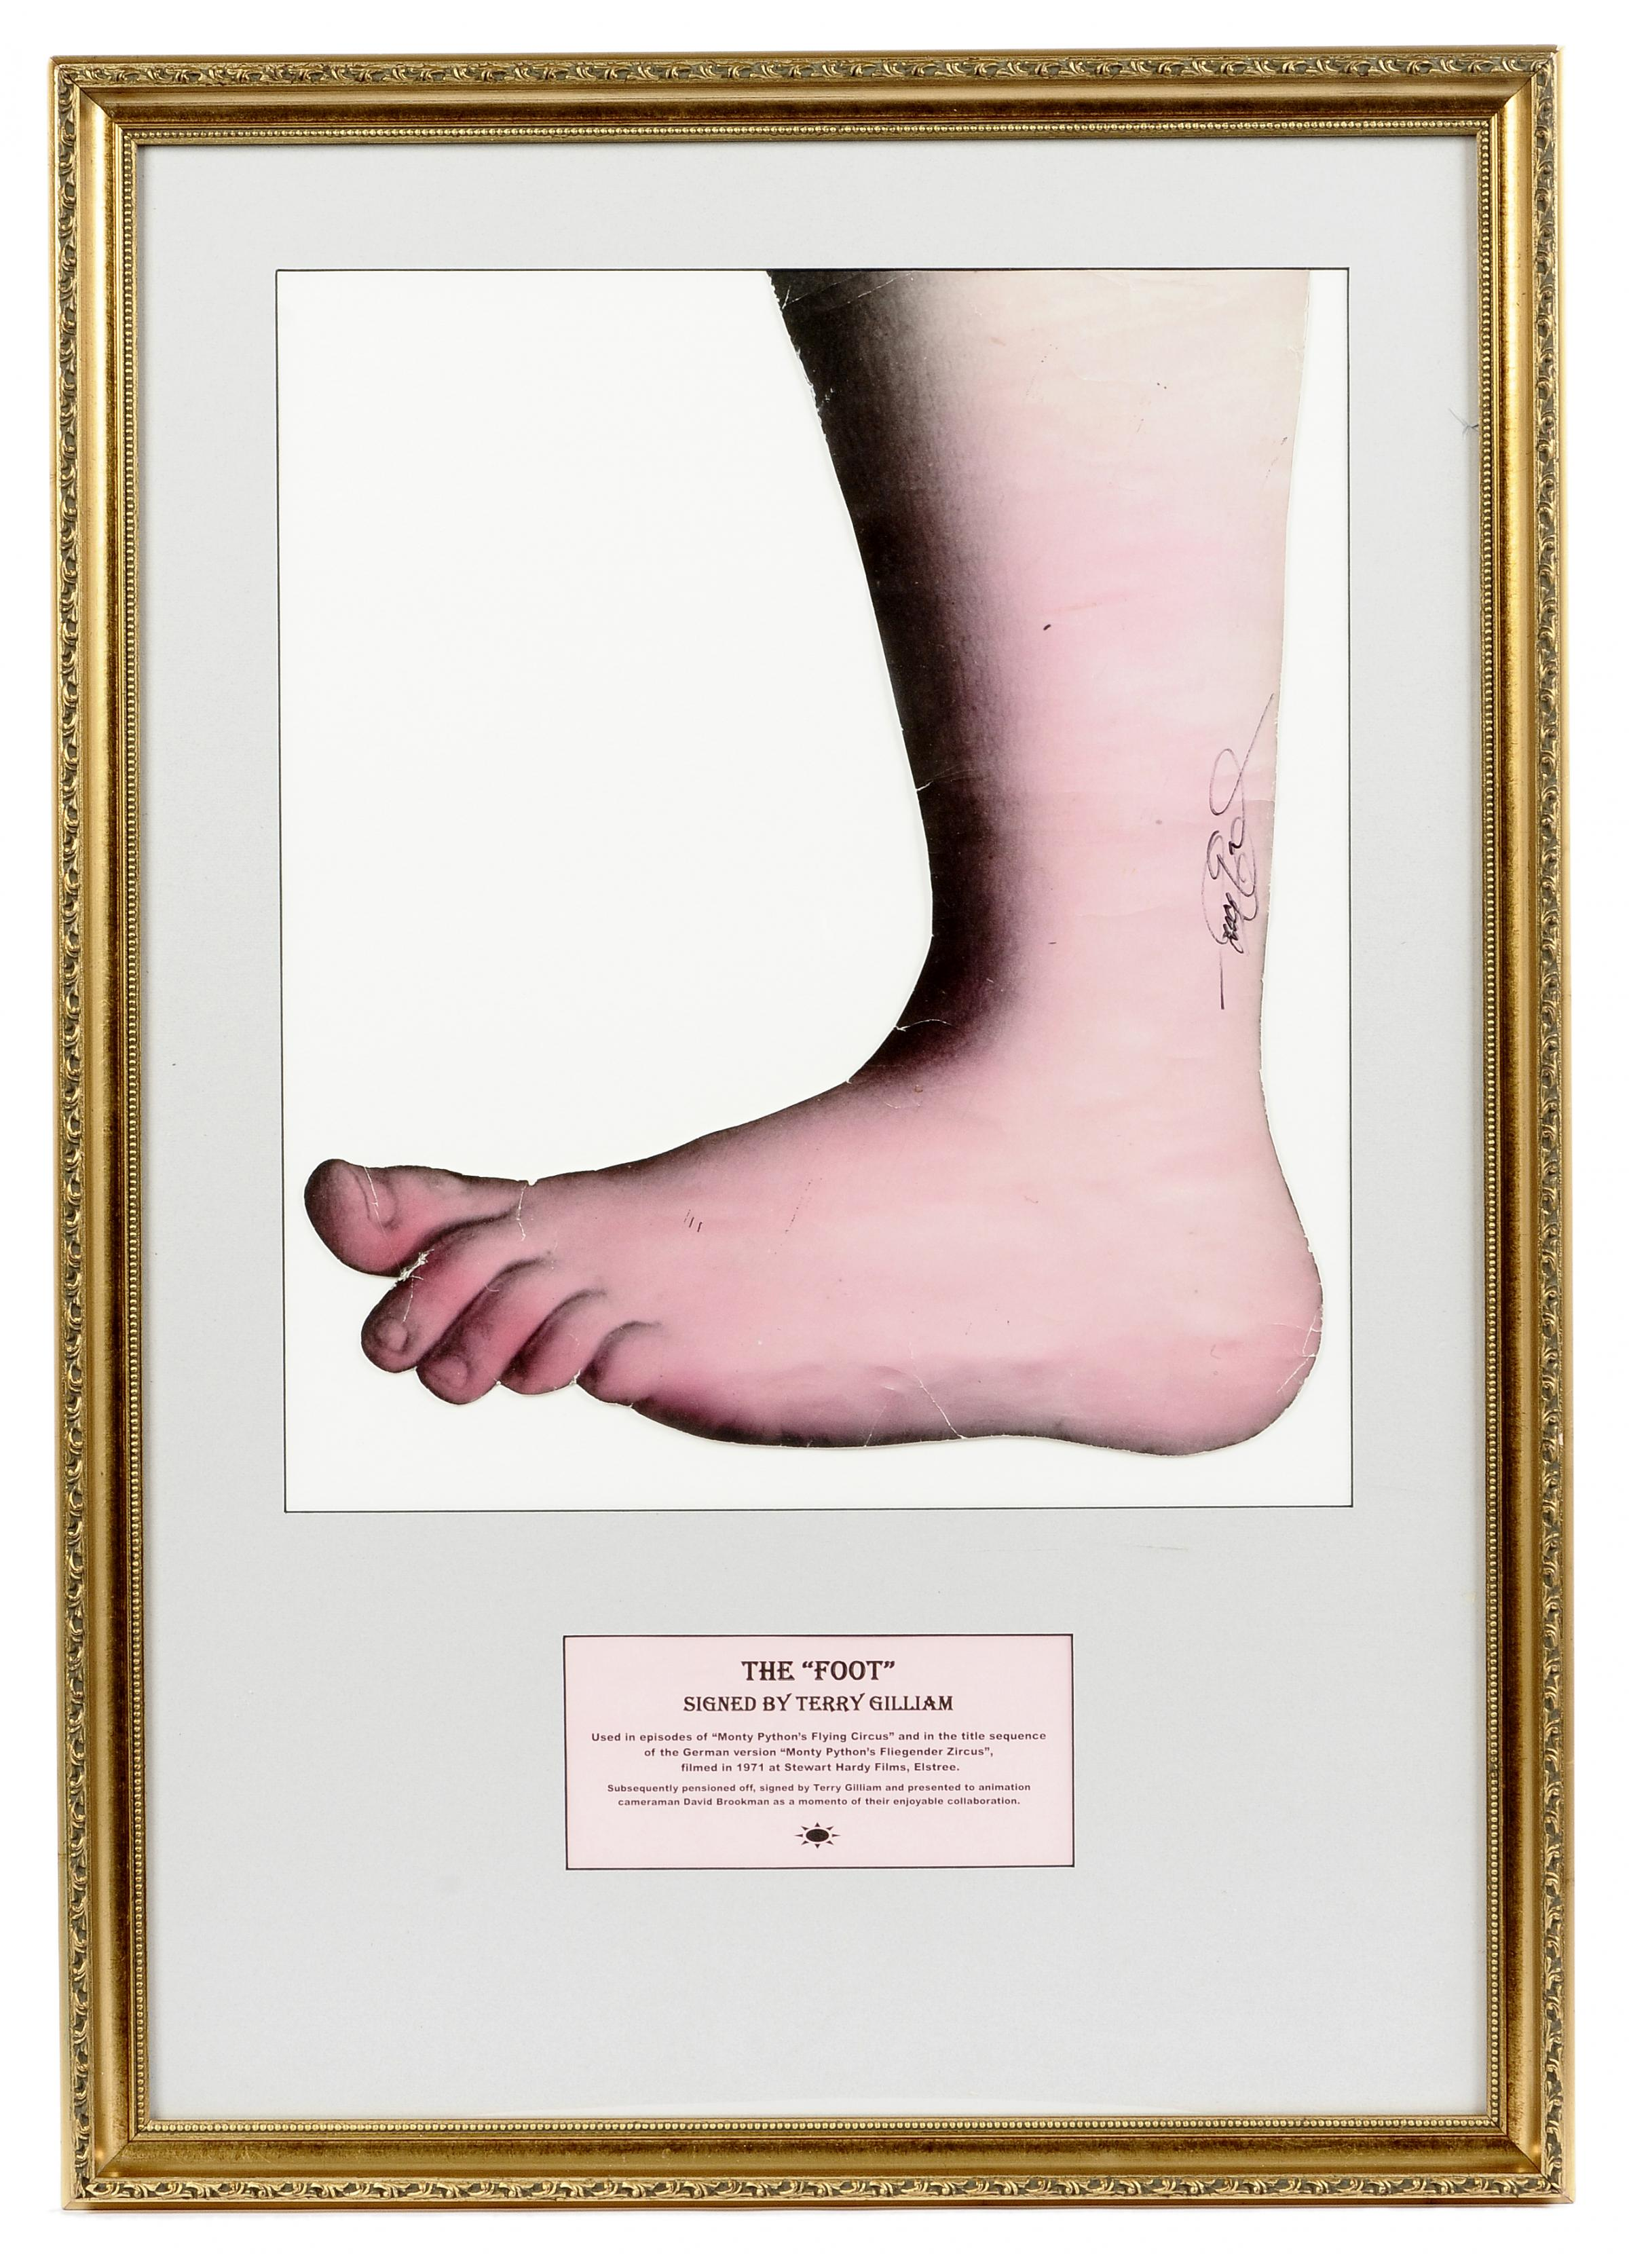 Monty Python Giant Foot Famous Monty Python Foot to go